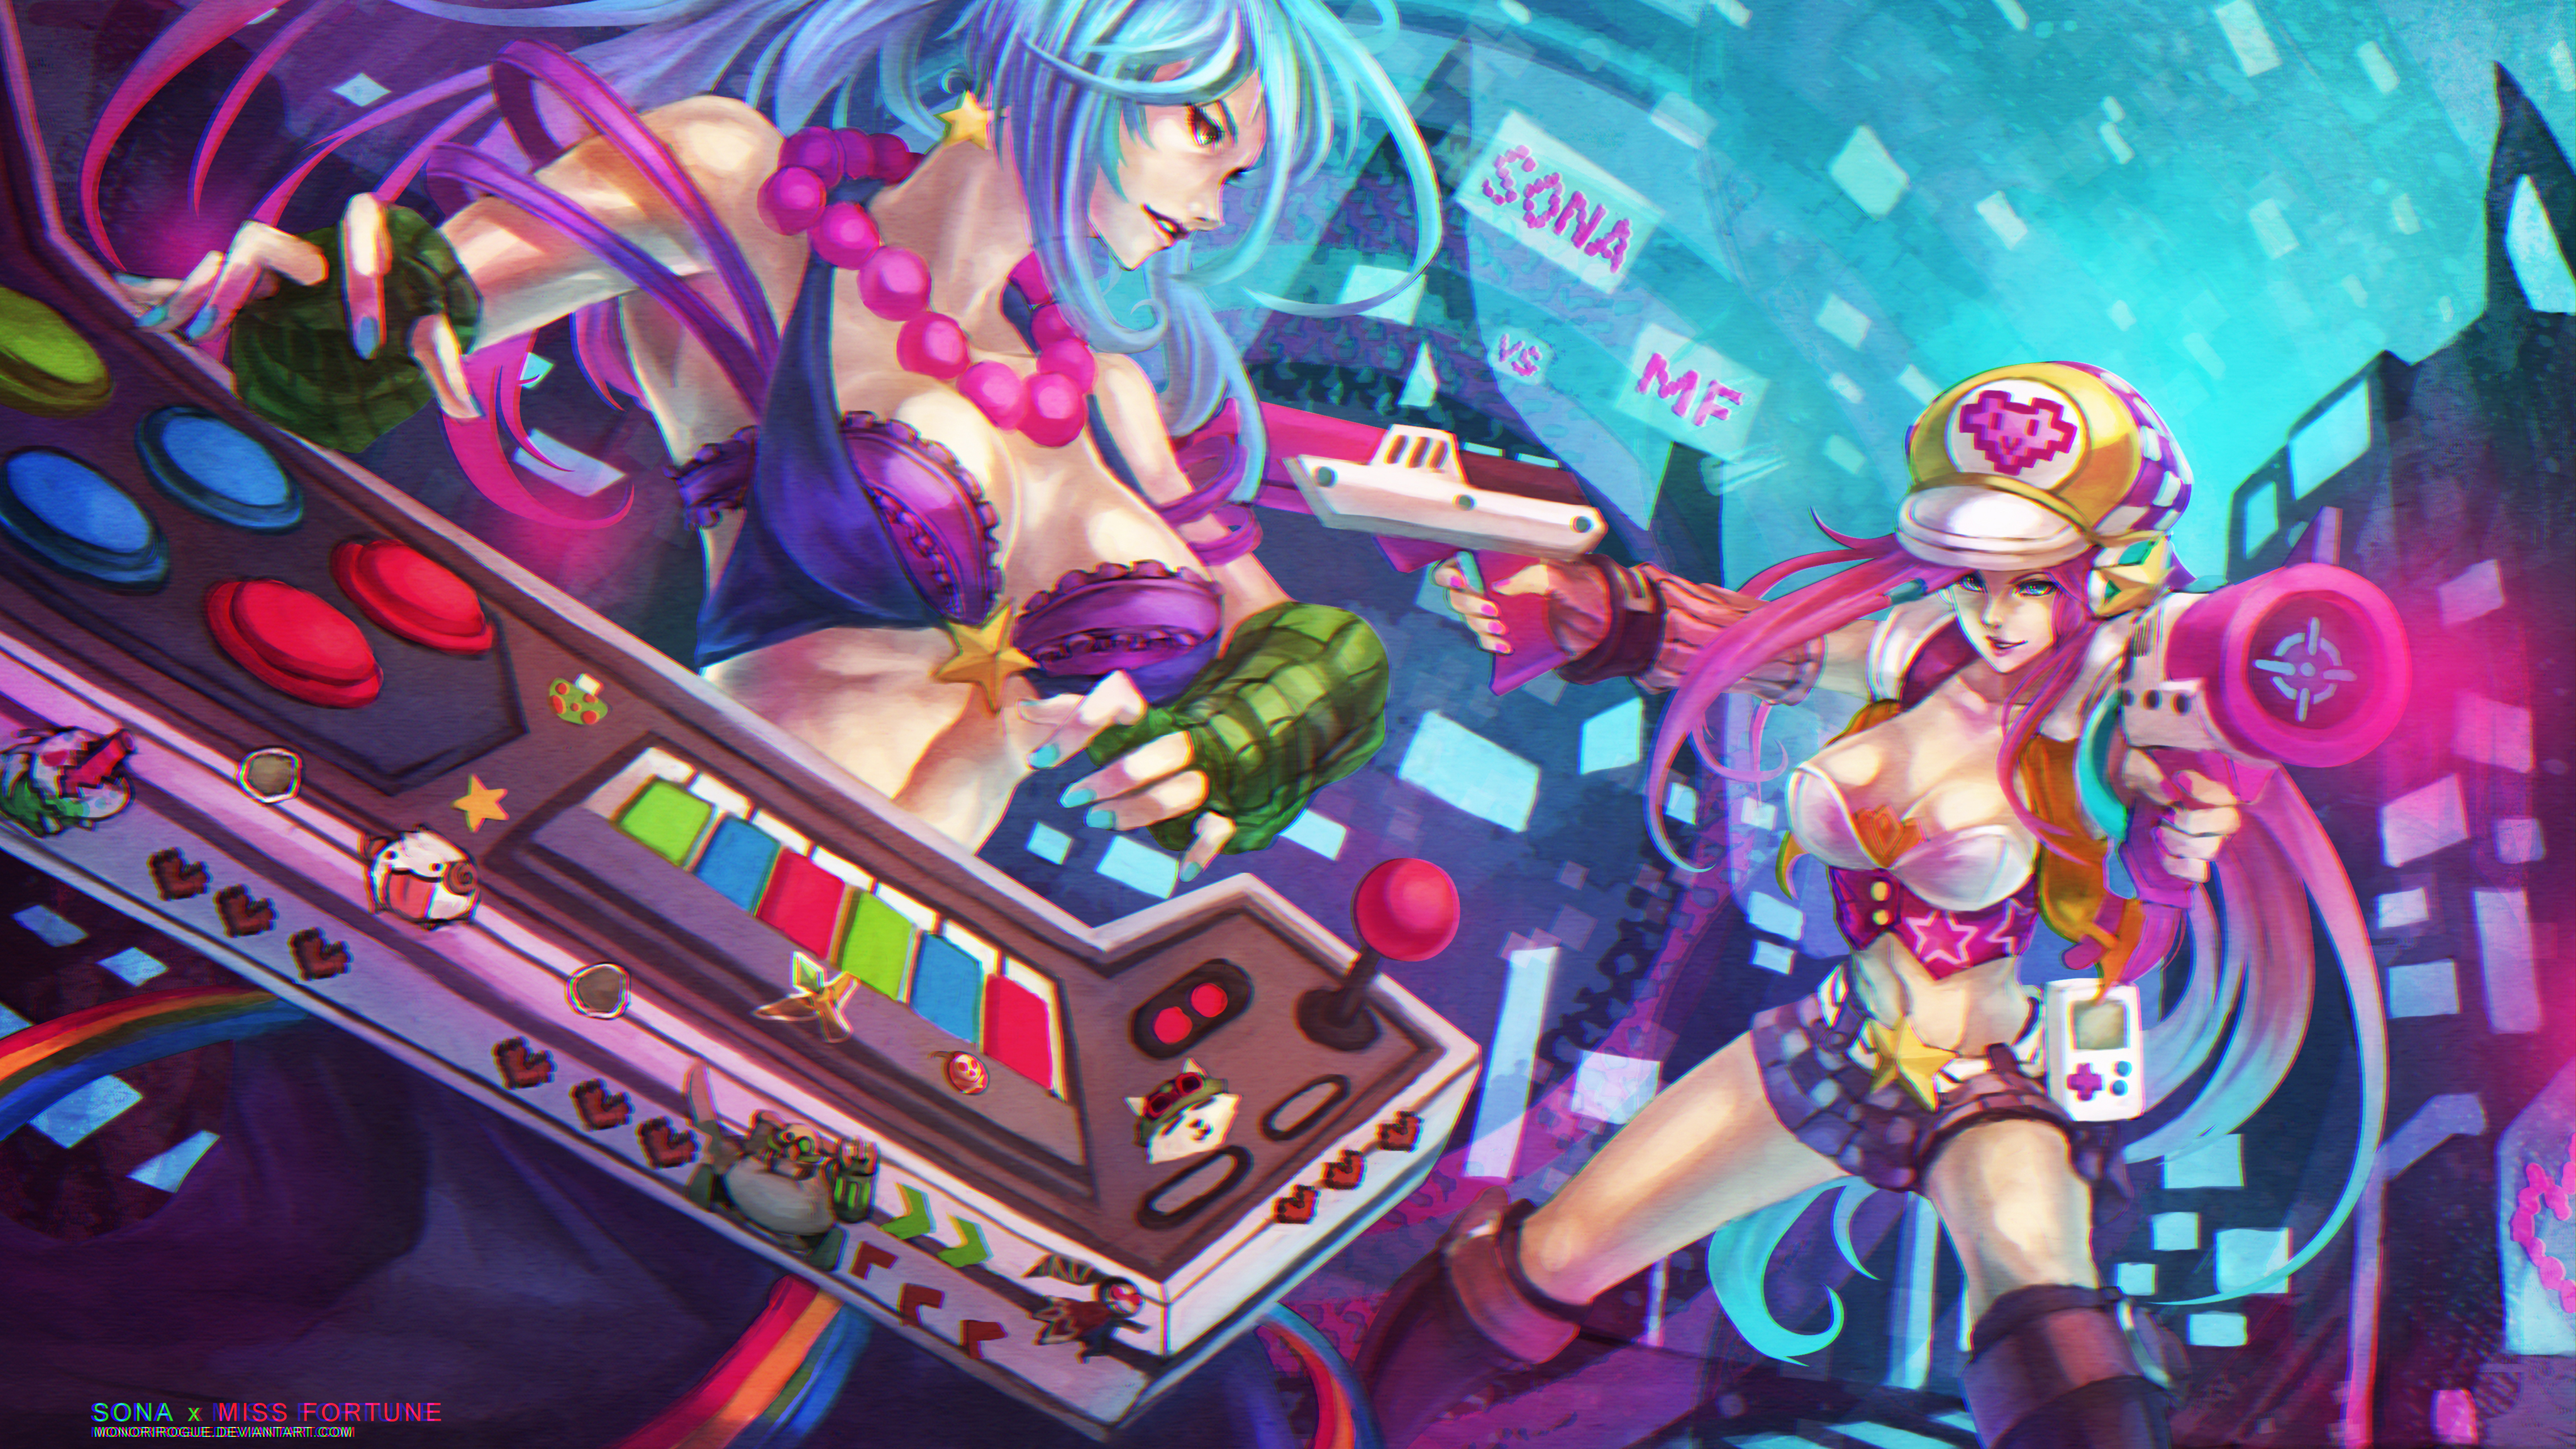 Arcade Sona vs Arcade Miss Fortune wallpaper